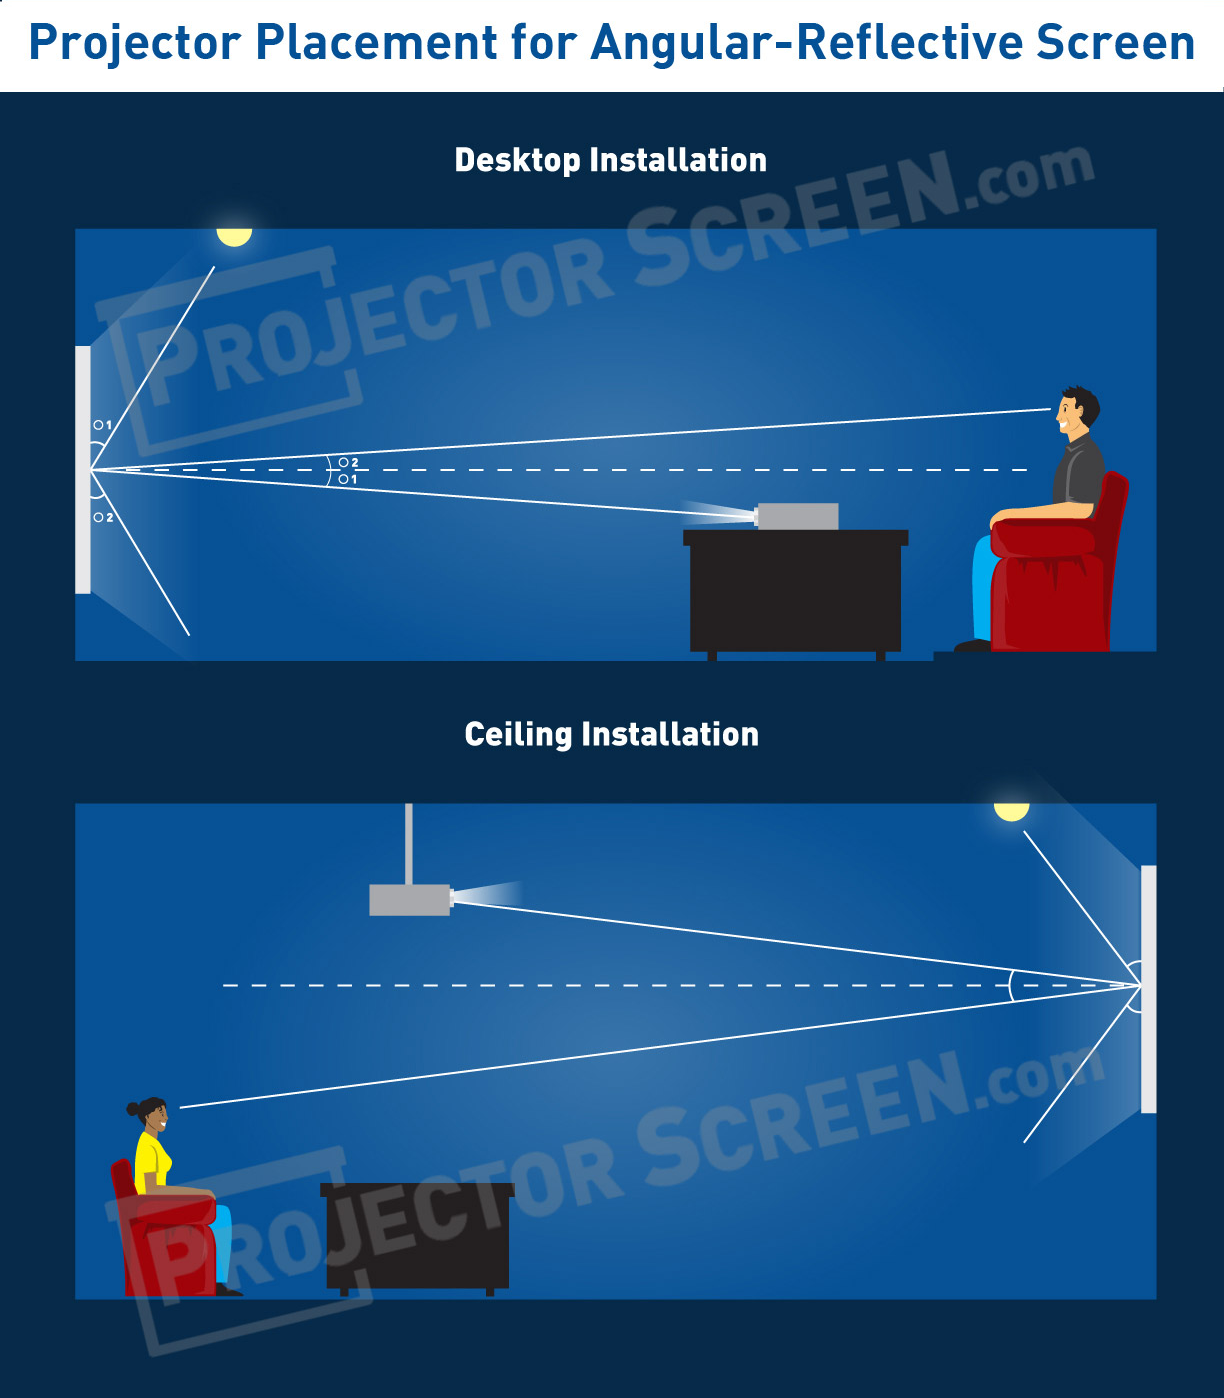 Ambient Light Rejecting Screens Explained